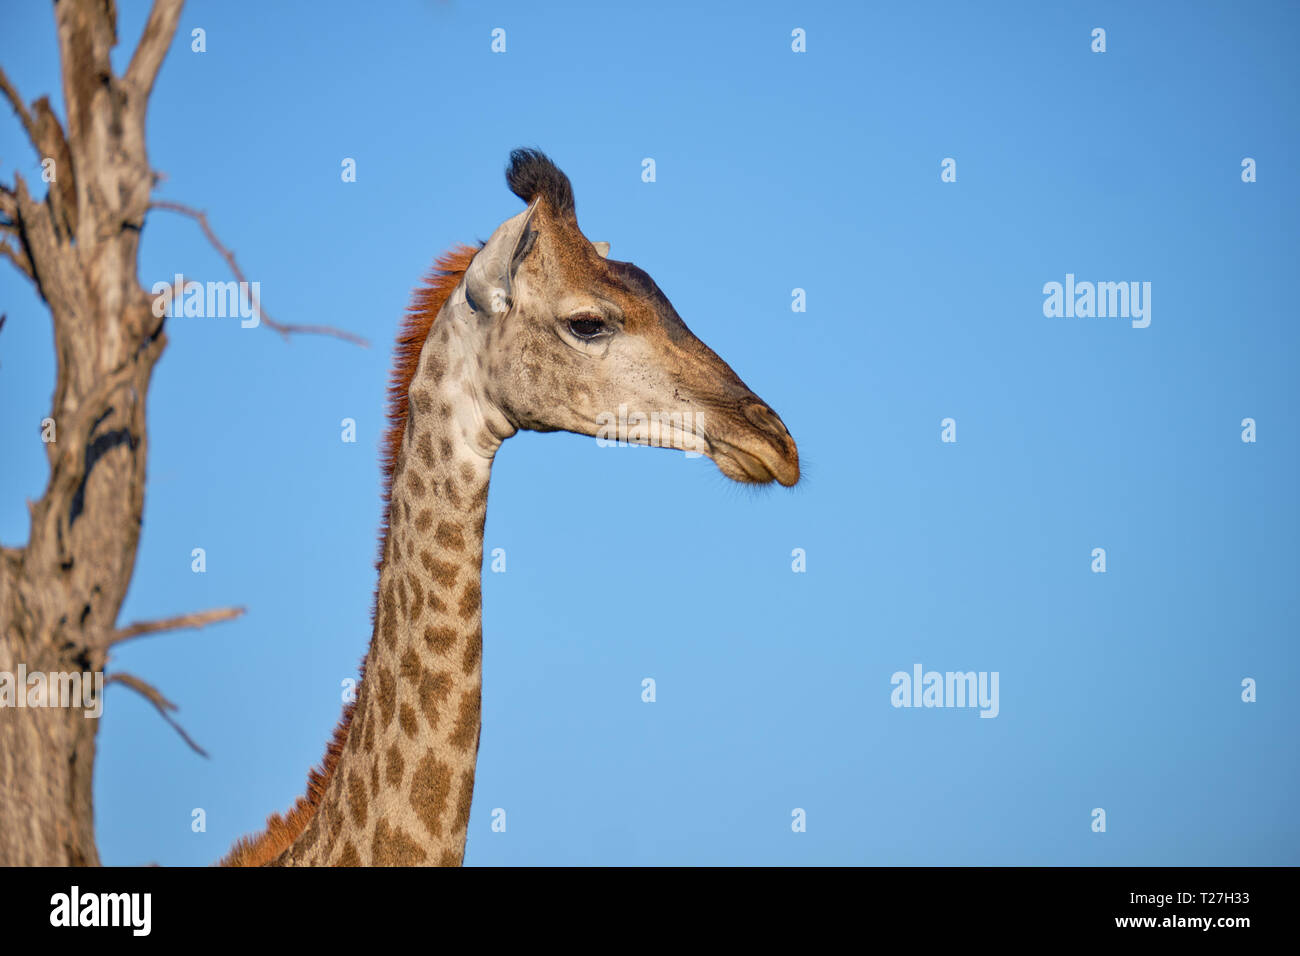 Profile head shot of South African Giraffe against blue sky with dead tree in background Stock Photo